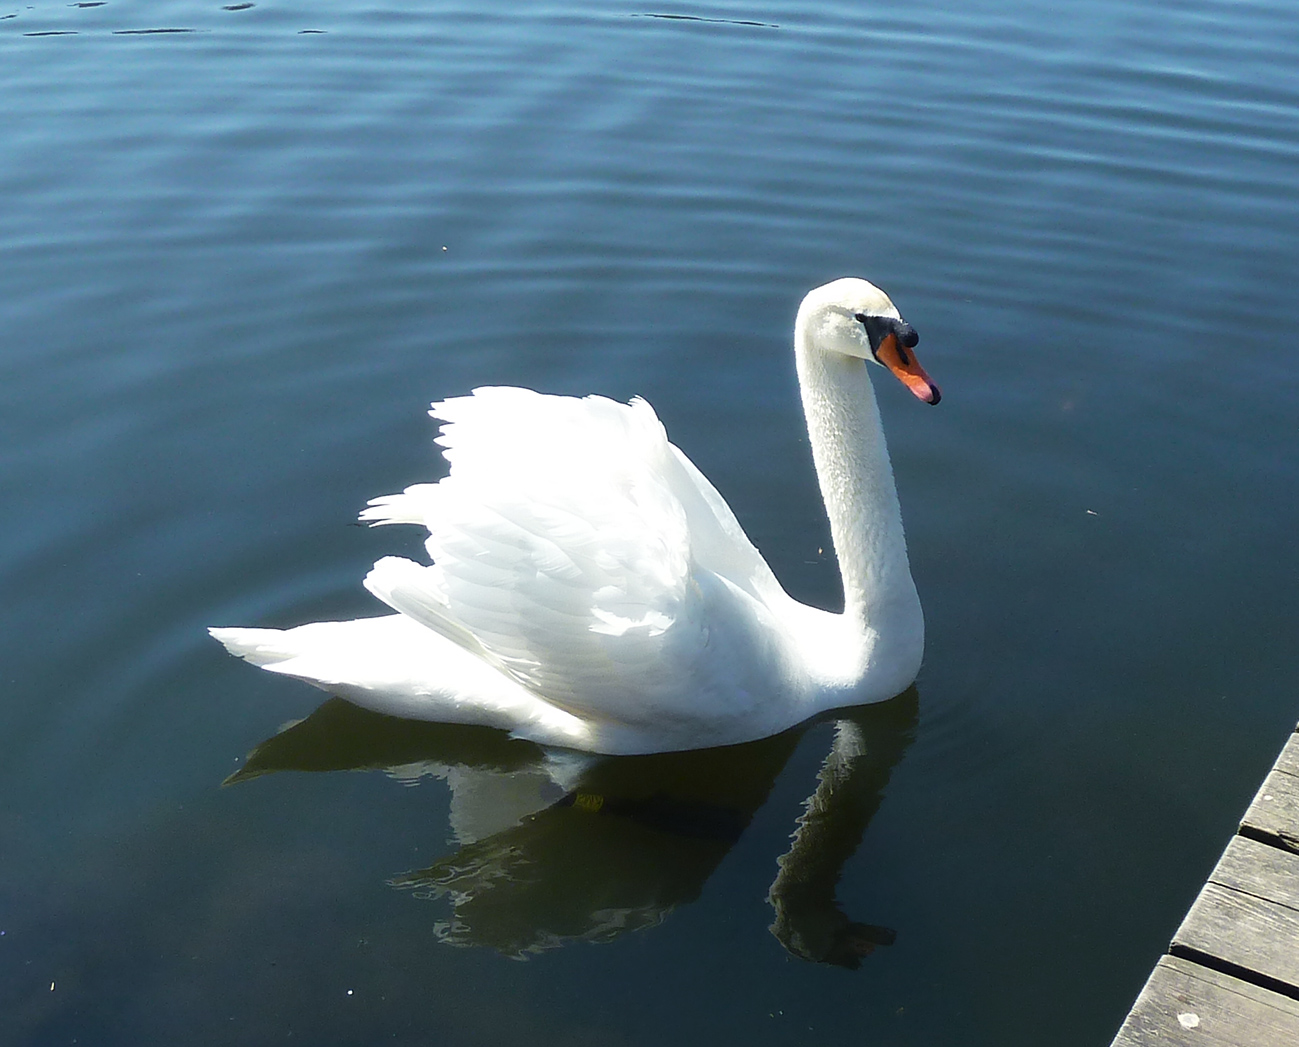 swan with shadow in the water